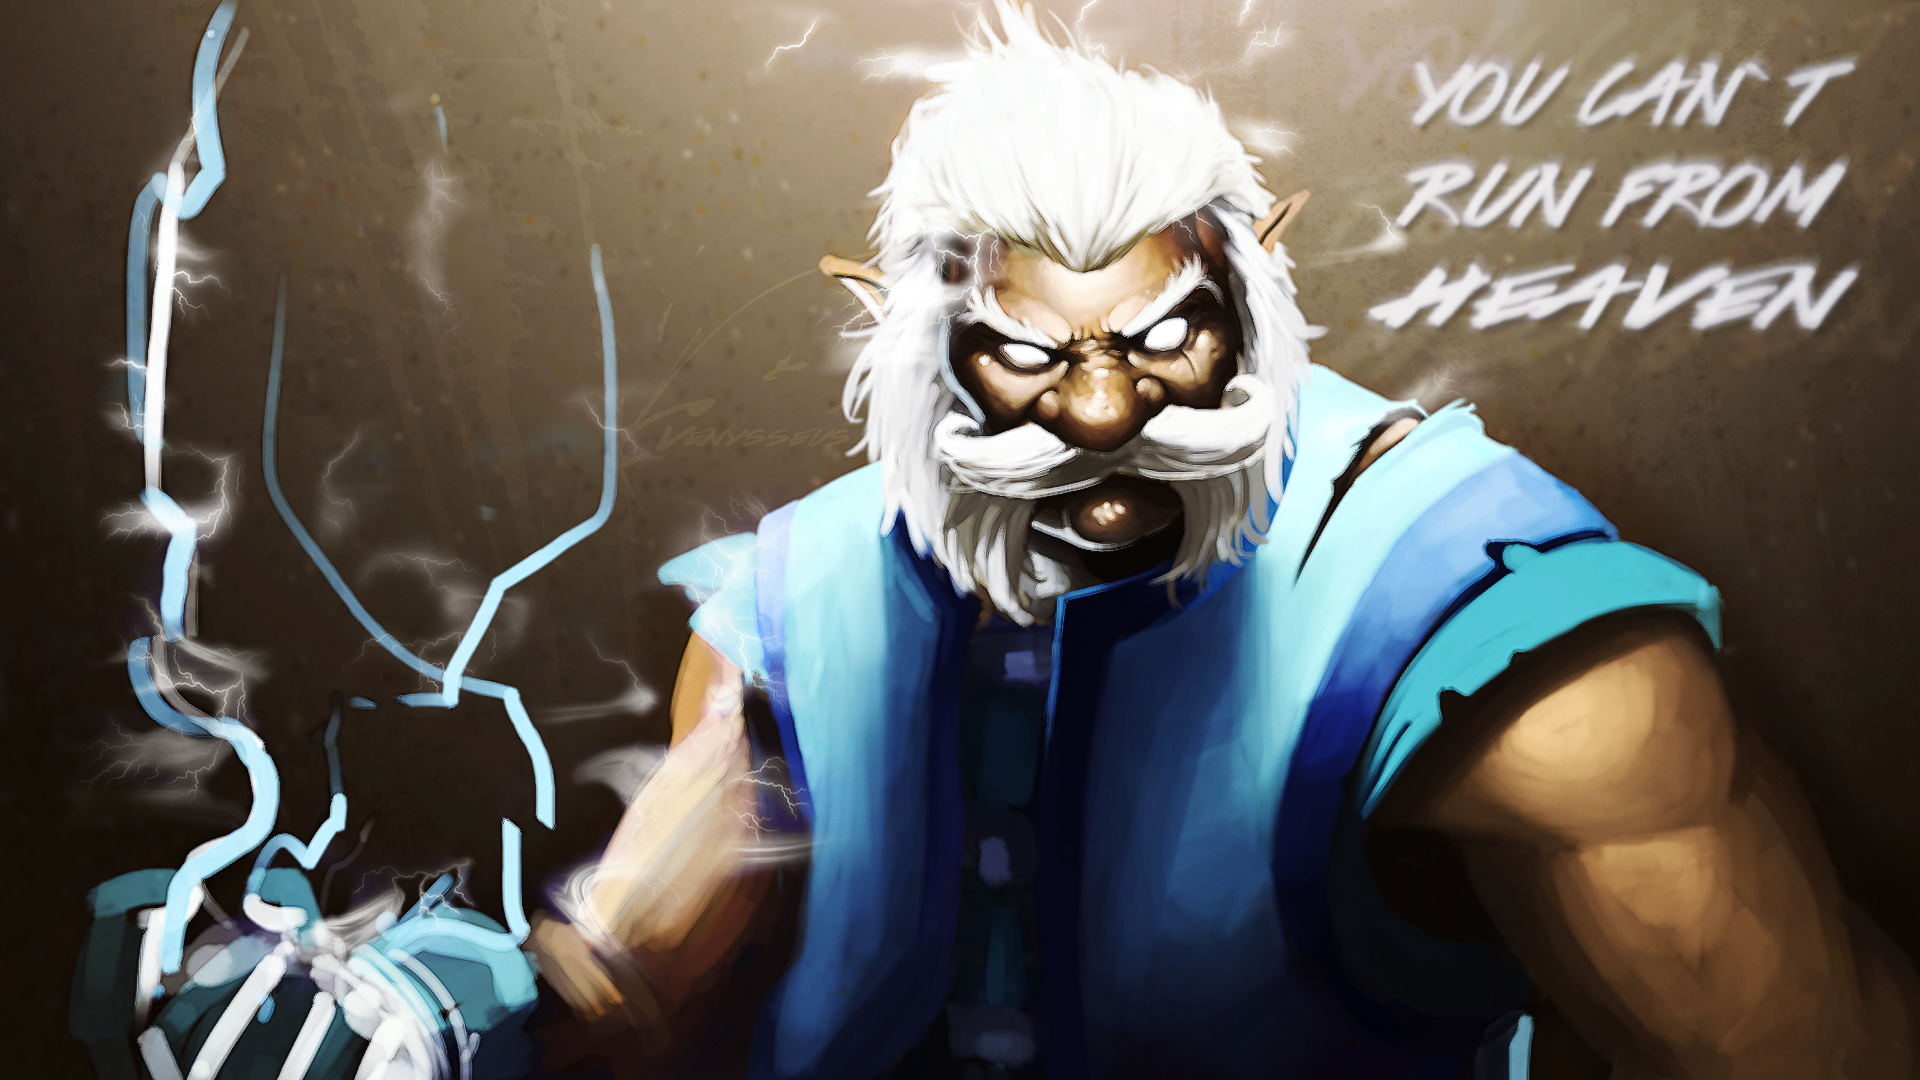 Dota 2 Wallpaper 3 Edit - Zeus by VenysseusDOTA